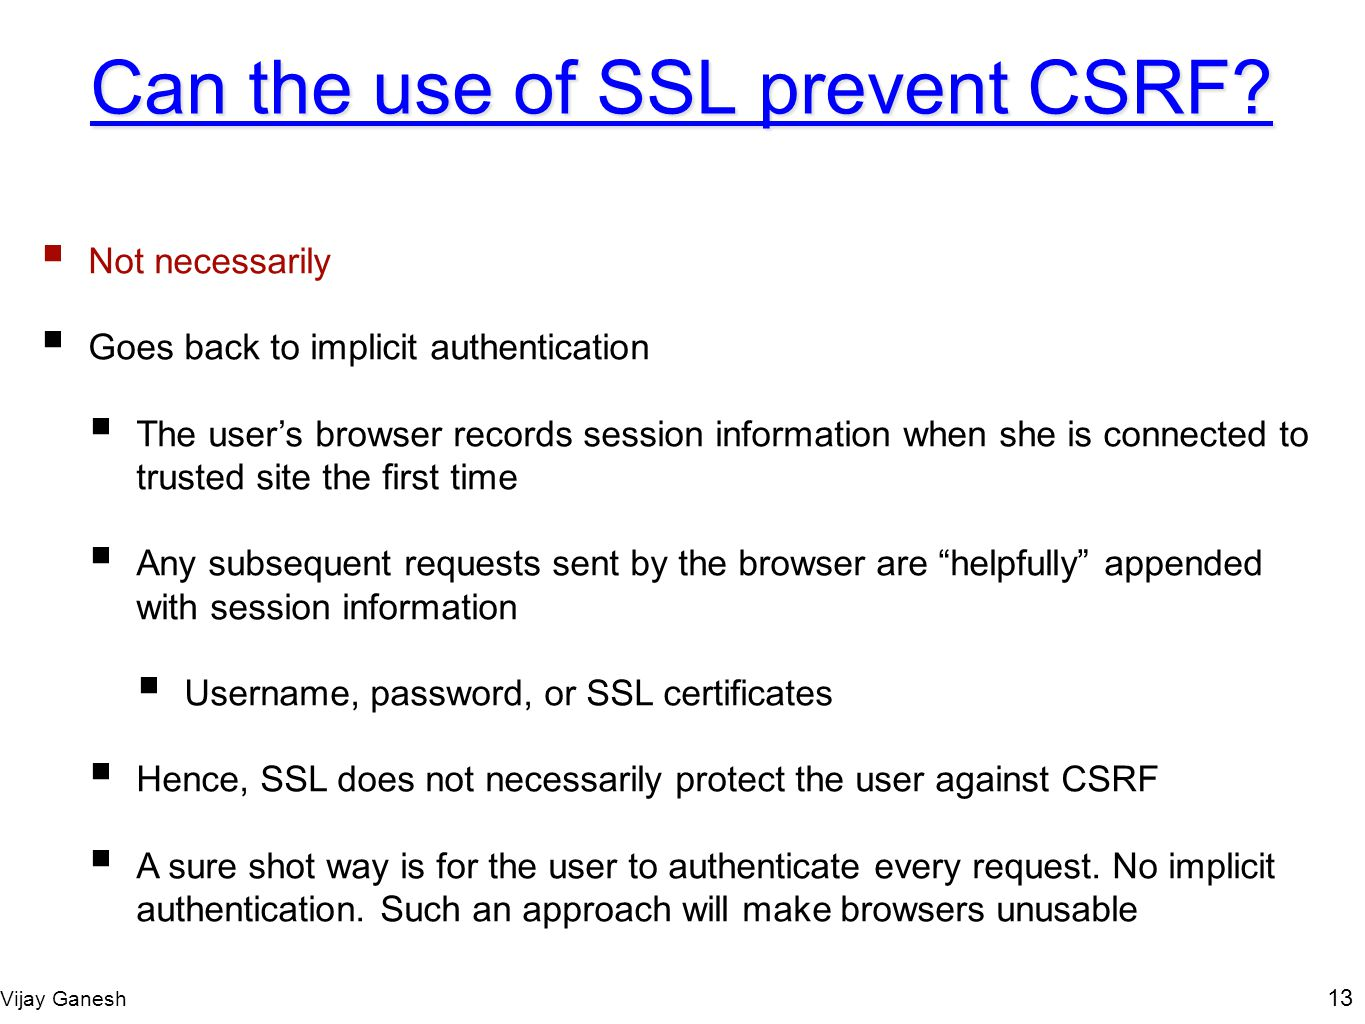 Can the use of SSL prevent CSRF